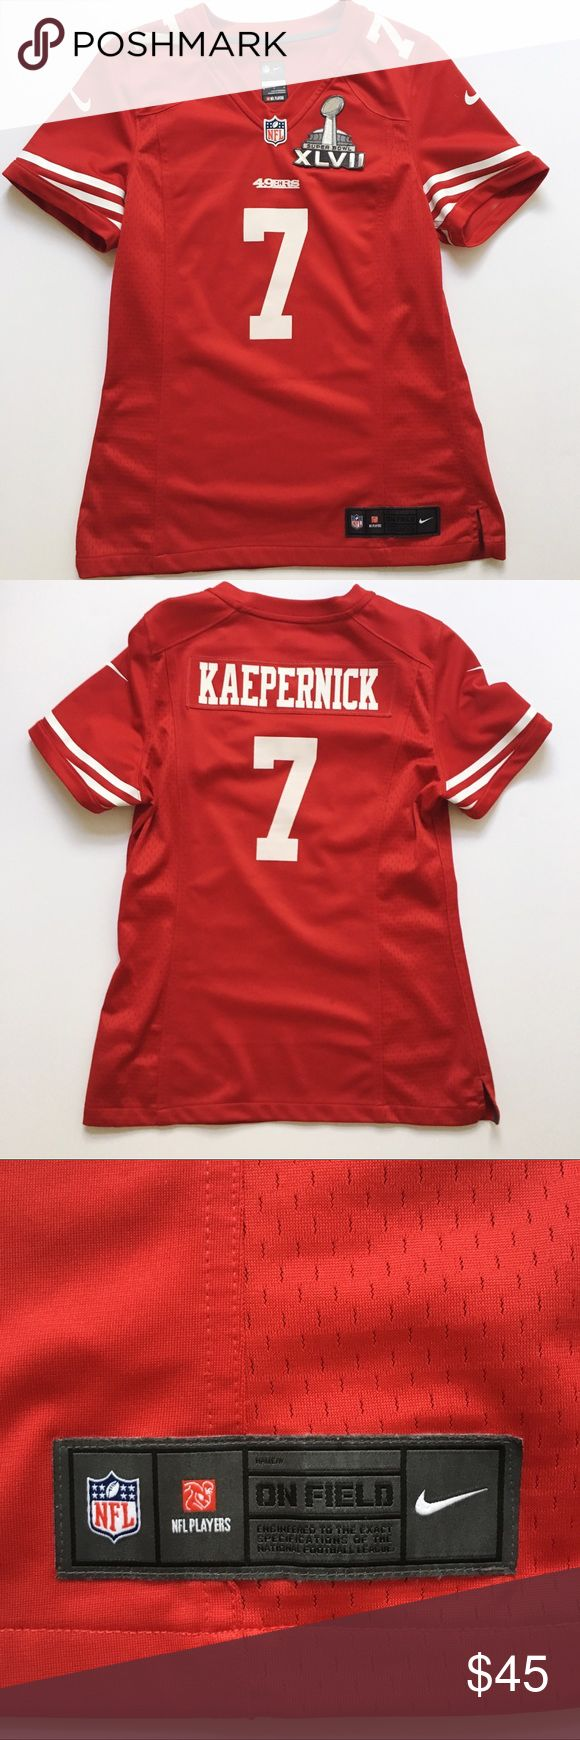 San Francisco 49ers Jersey Size Medium San Francisco 49ers Jersey Size Medium but fits more like a Small. Gently used. NFL Tops